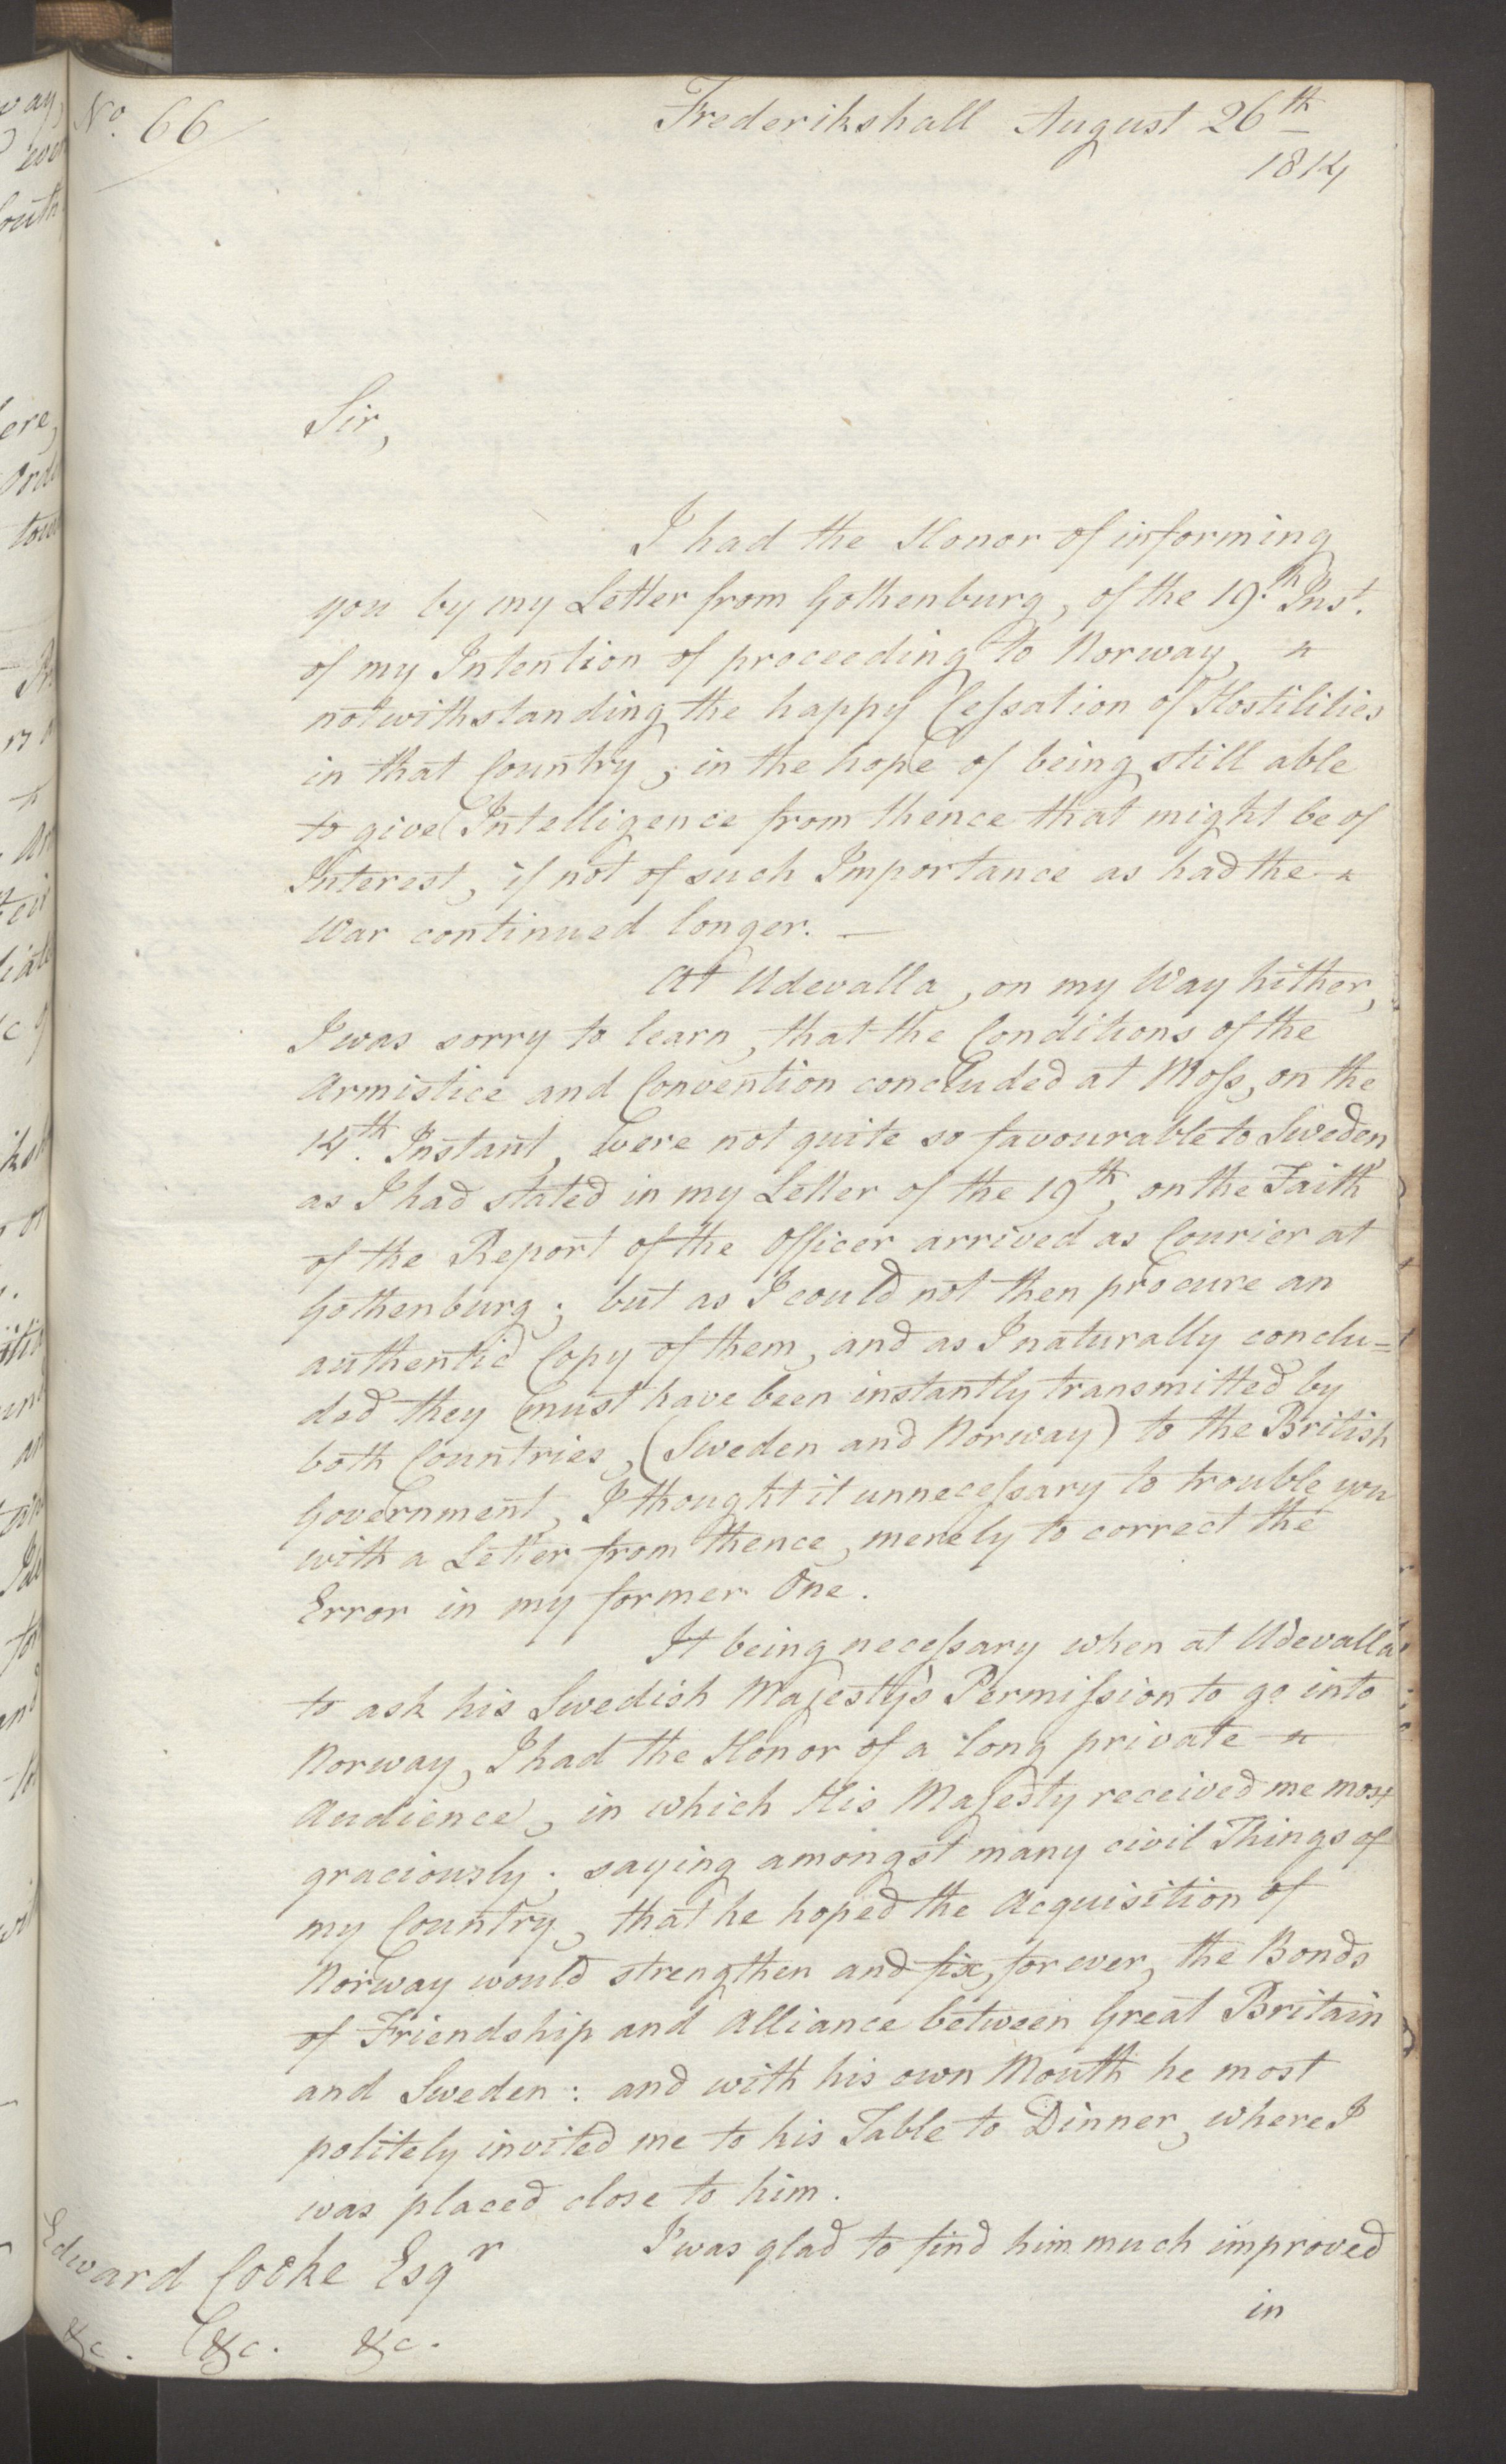 UKA, Foreign Office*, FO 38/16: Sir C. Gordon. Reports from Malmö, Jonkoping, and Helsingborg, 1814, s. 95